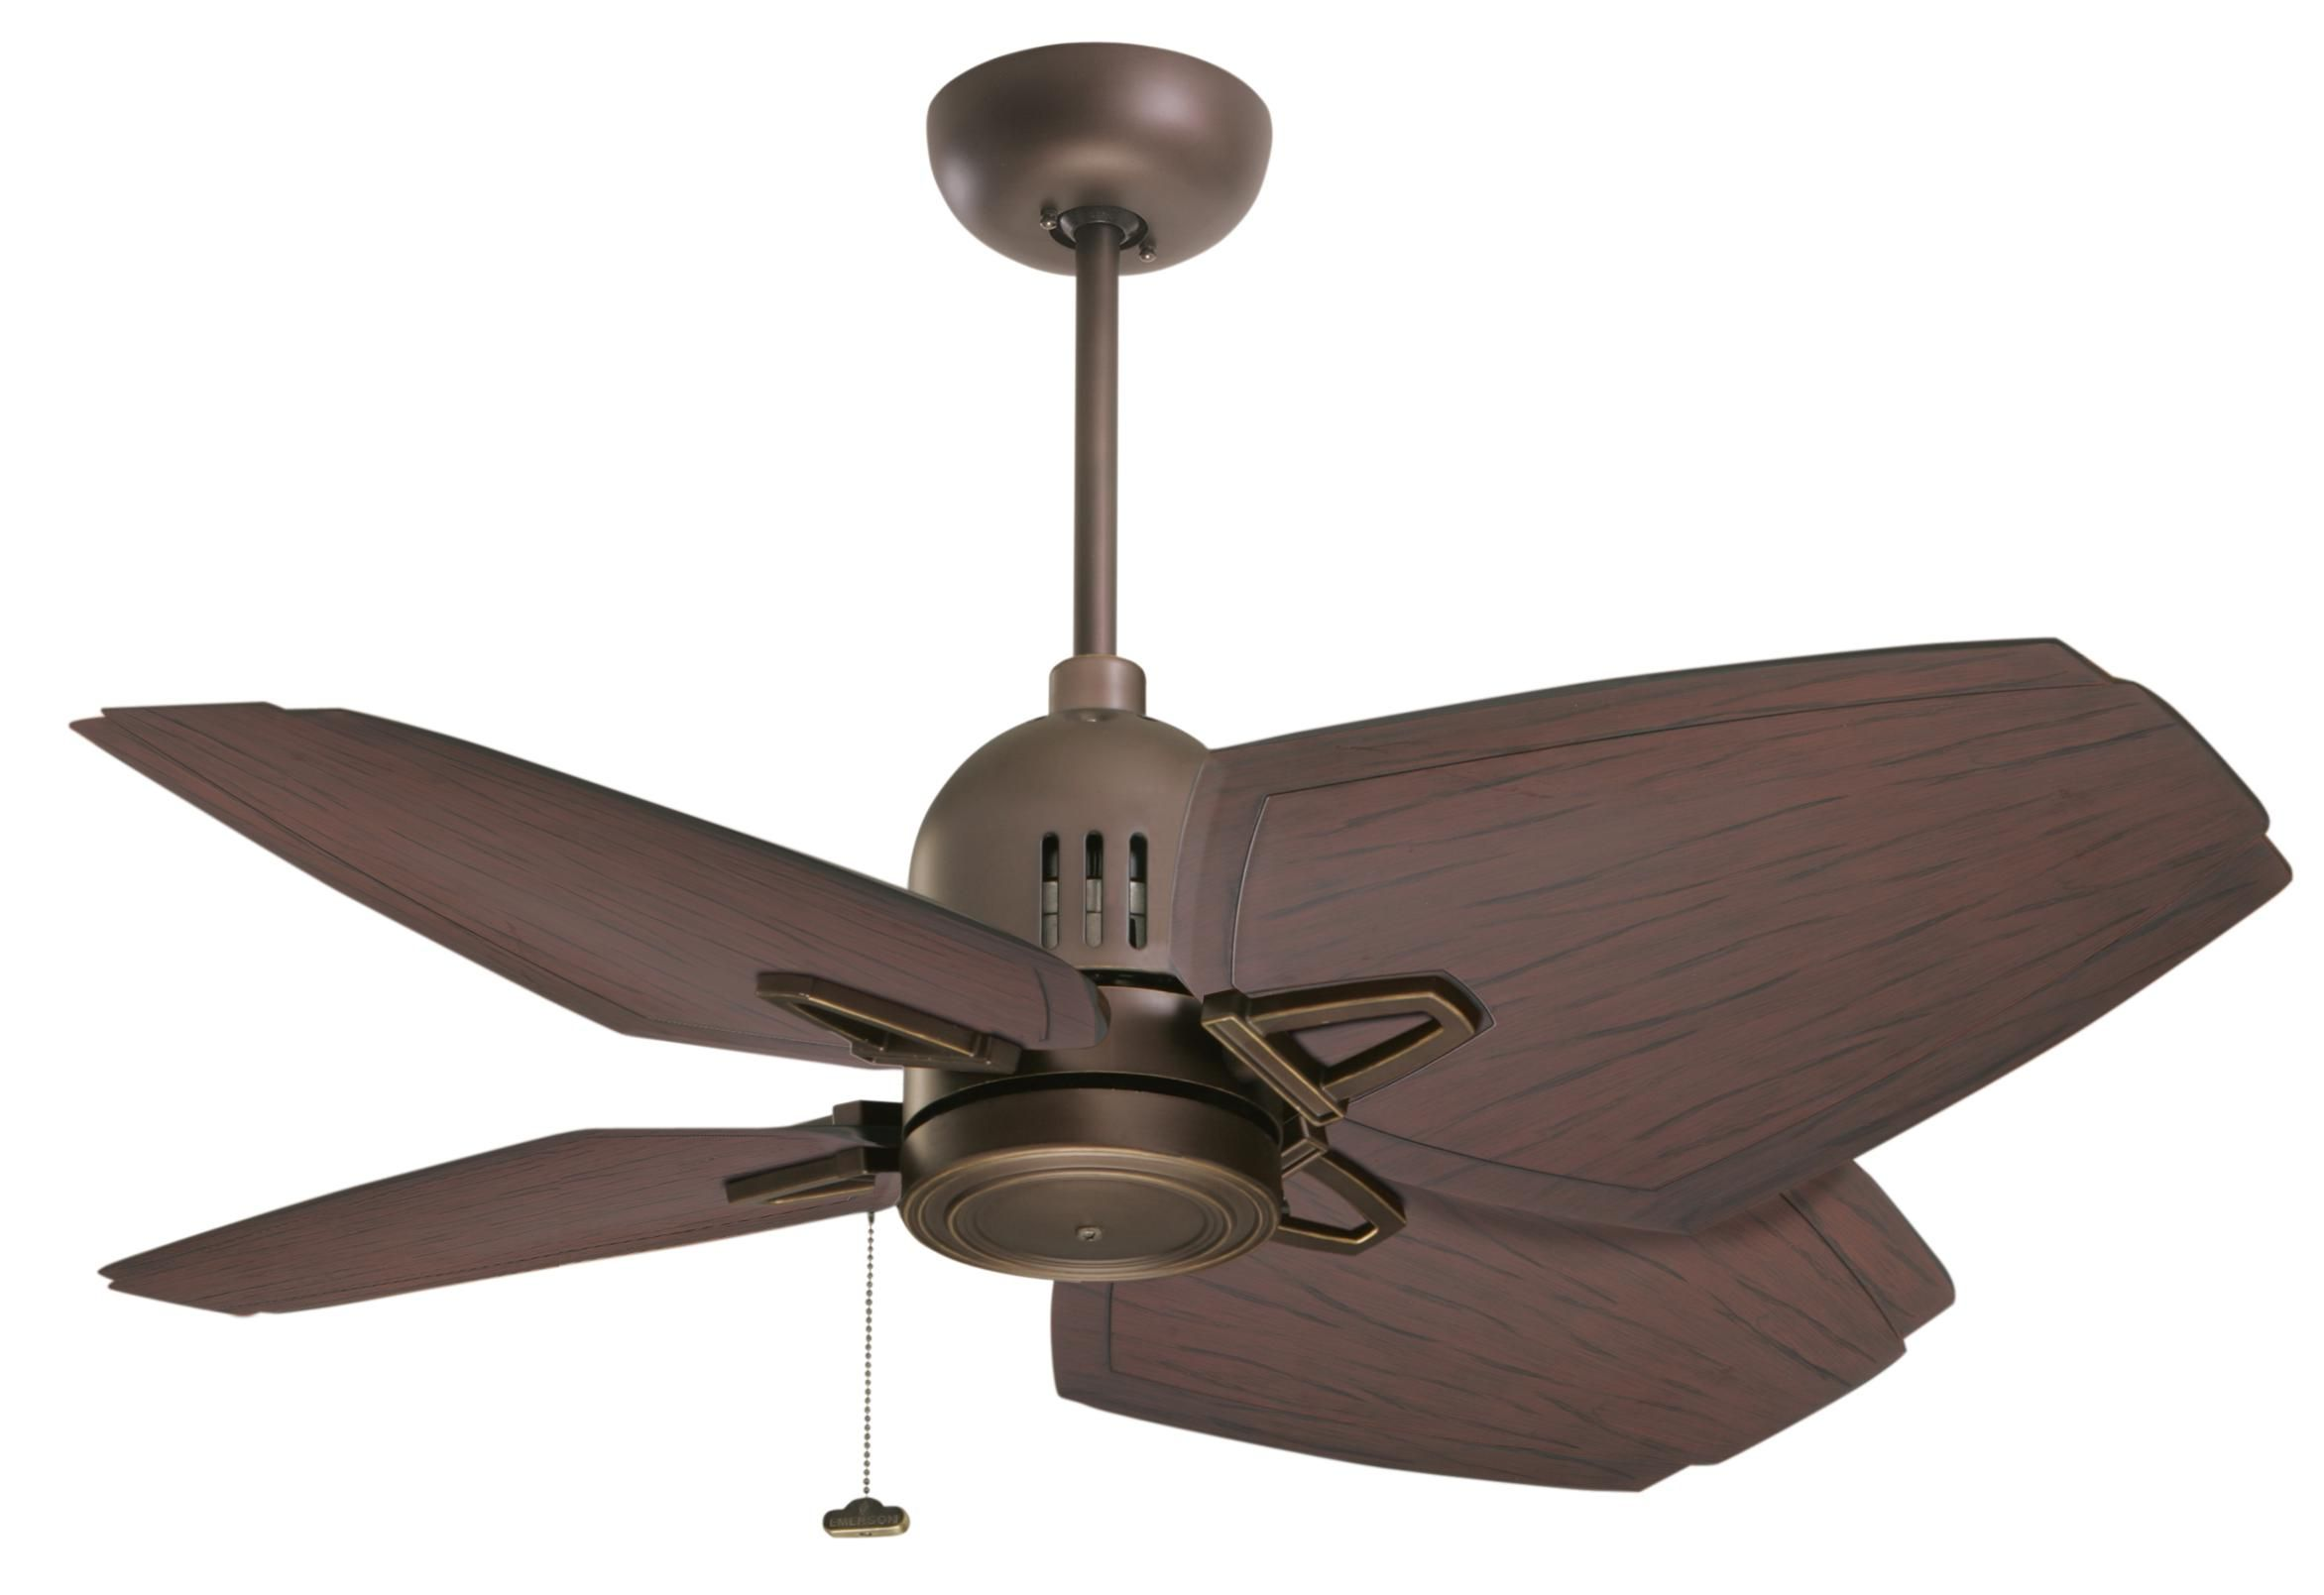 Emerson aira eco 72 inch oil rubbed bronze modern ceiling fan free - Emerson Camden Ceiling Fan In Oil Rubbed Bronze Guaranteed Lowest Price